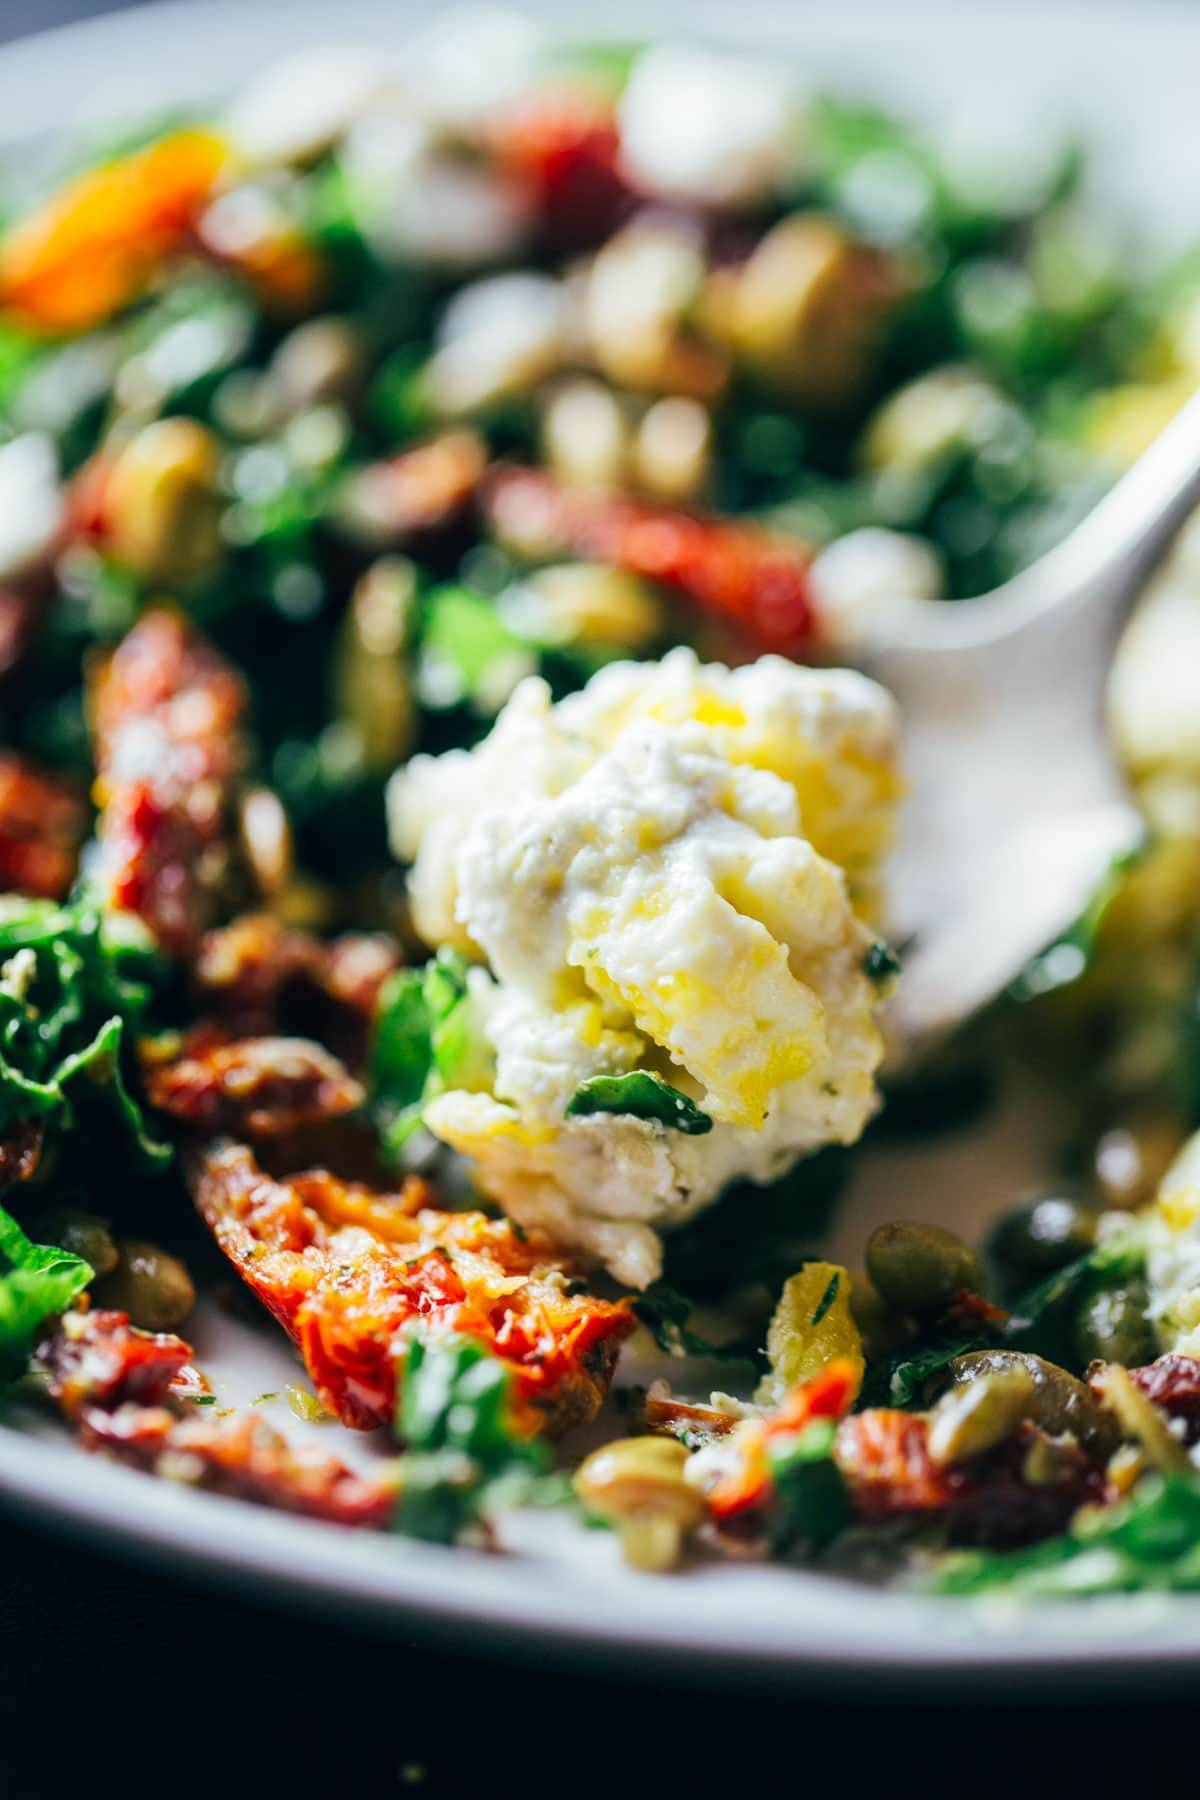 Scrambled Eggs with Pesto Veggies.